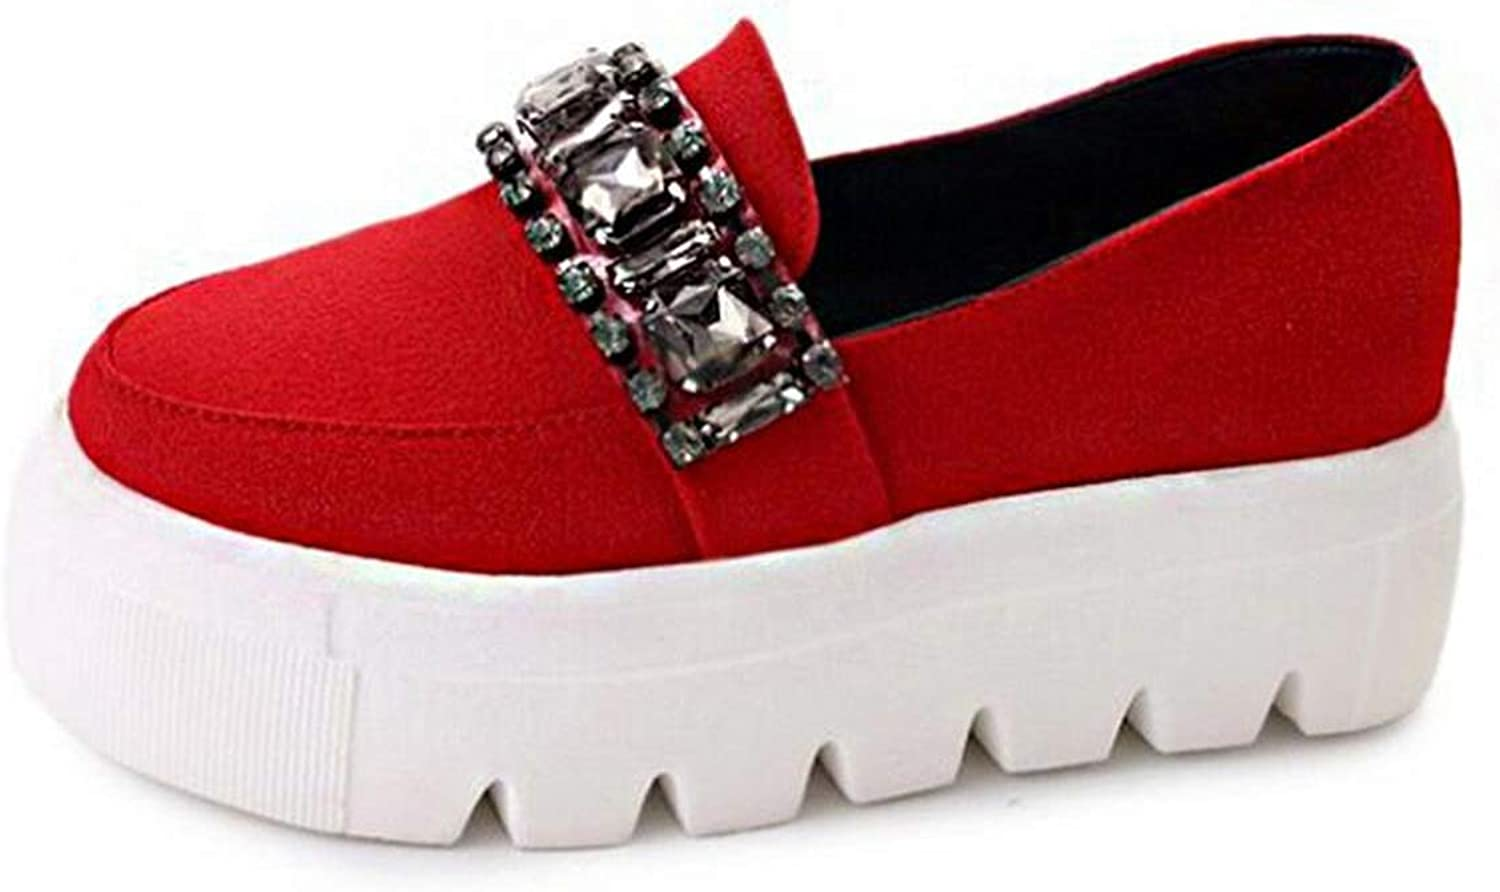 Rhinestone Spring Autumn Flat Platform shoes Shallow Slip On Flock Creepers Footwear shoes Loafers